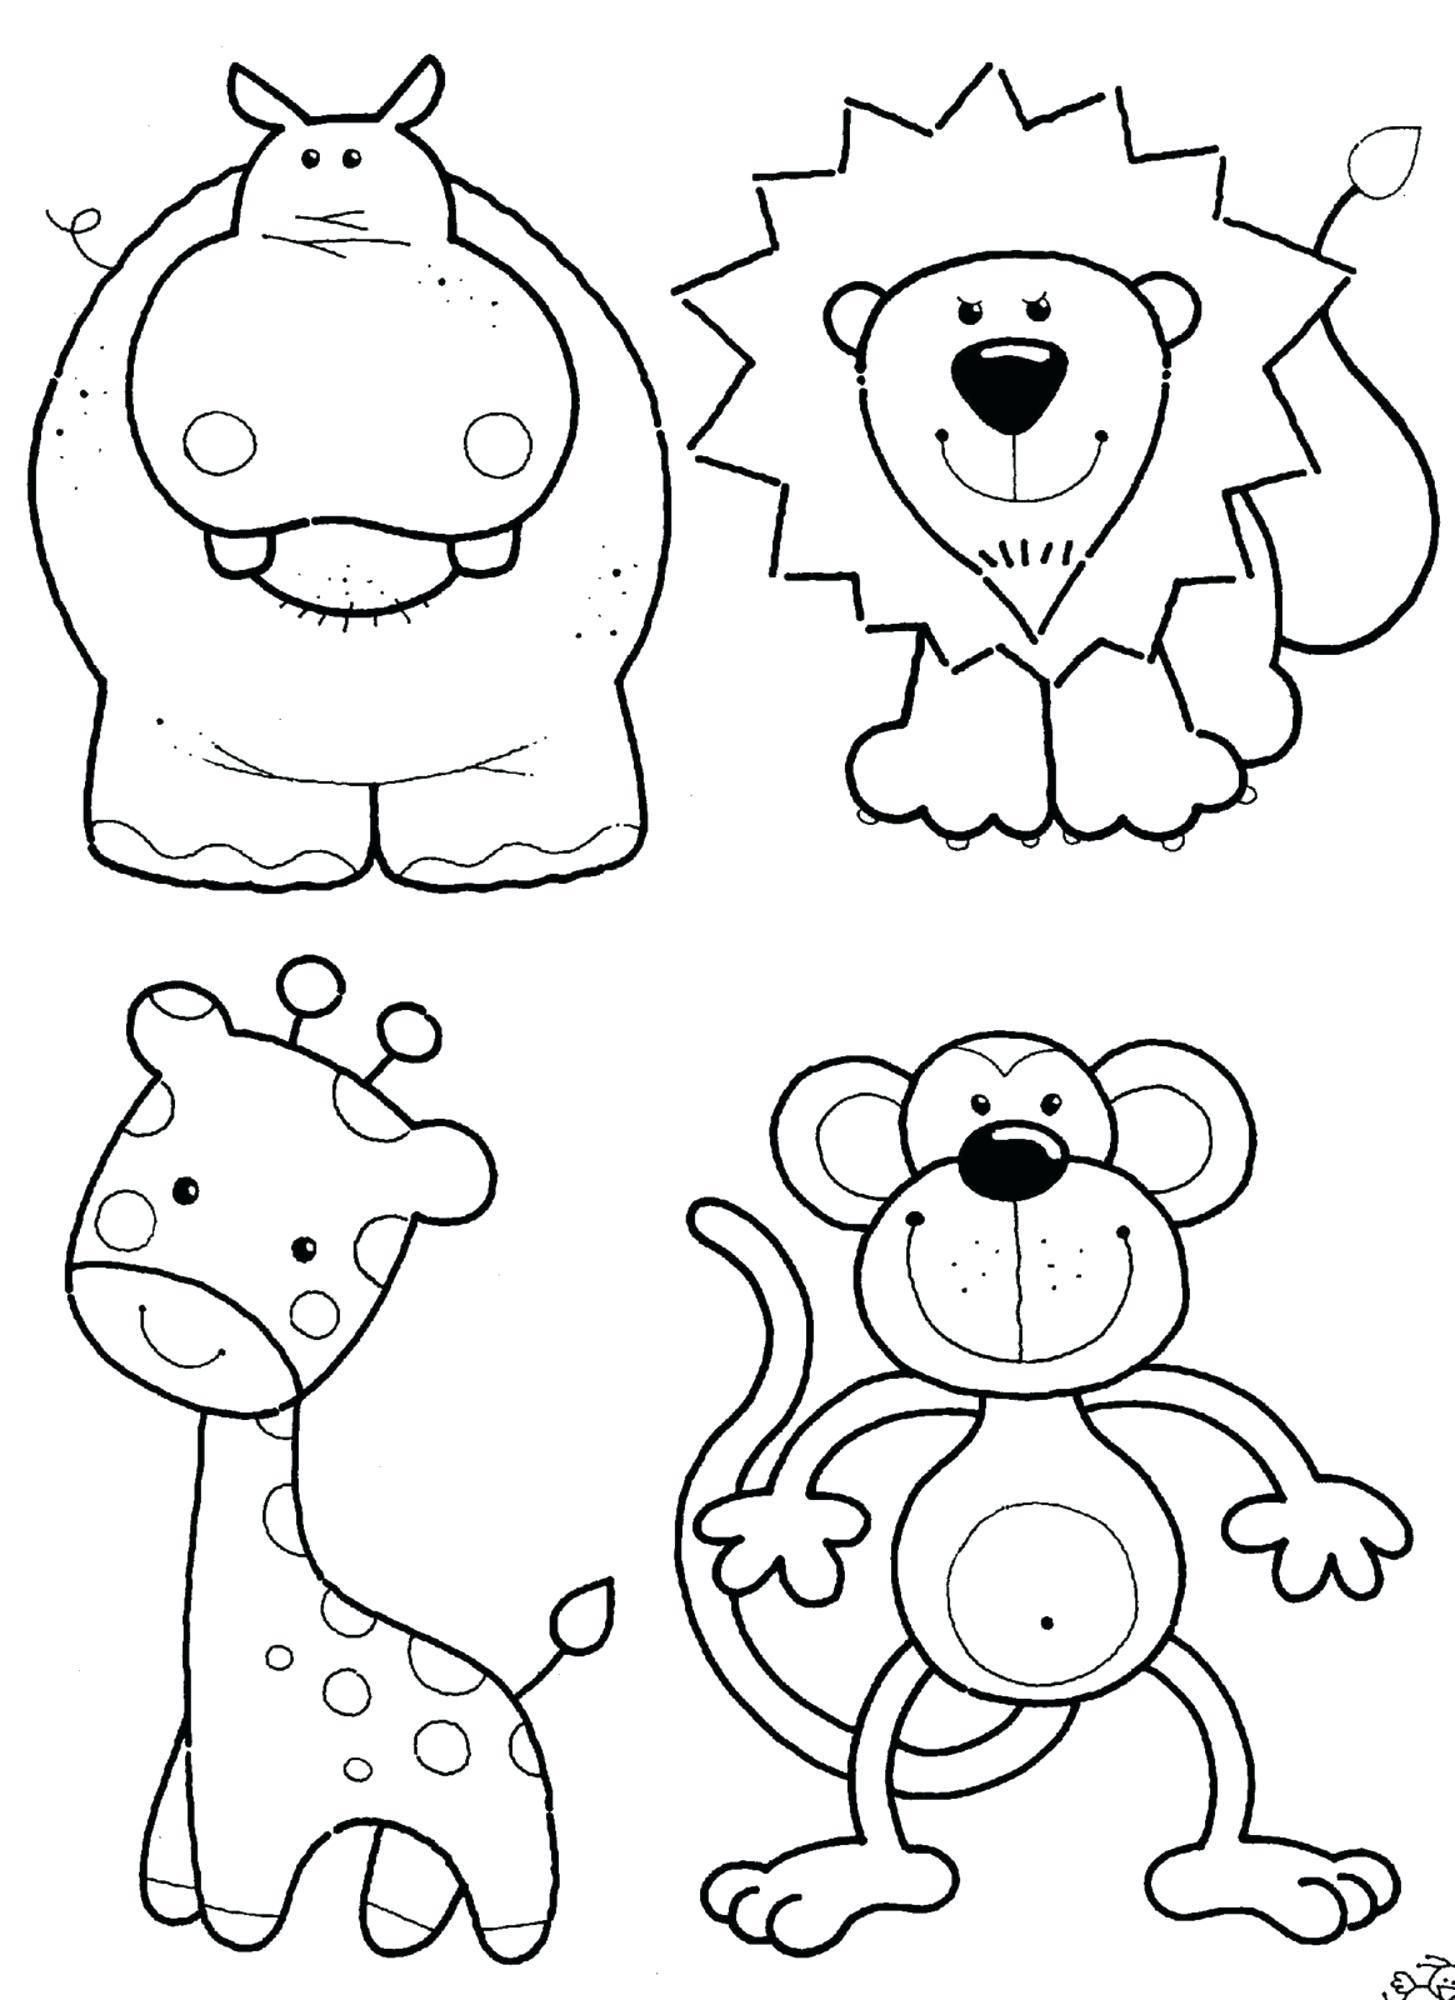 18 Printable Zoo Animal Coloring Sheets Zoo Coloring Pages Giraffe Coloring Pages Animal Coloring Books